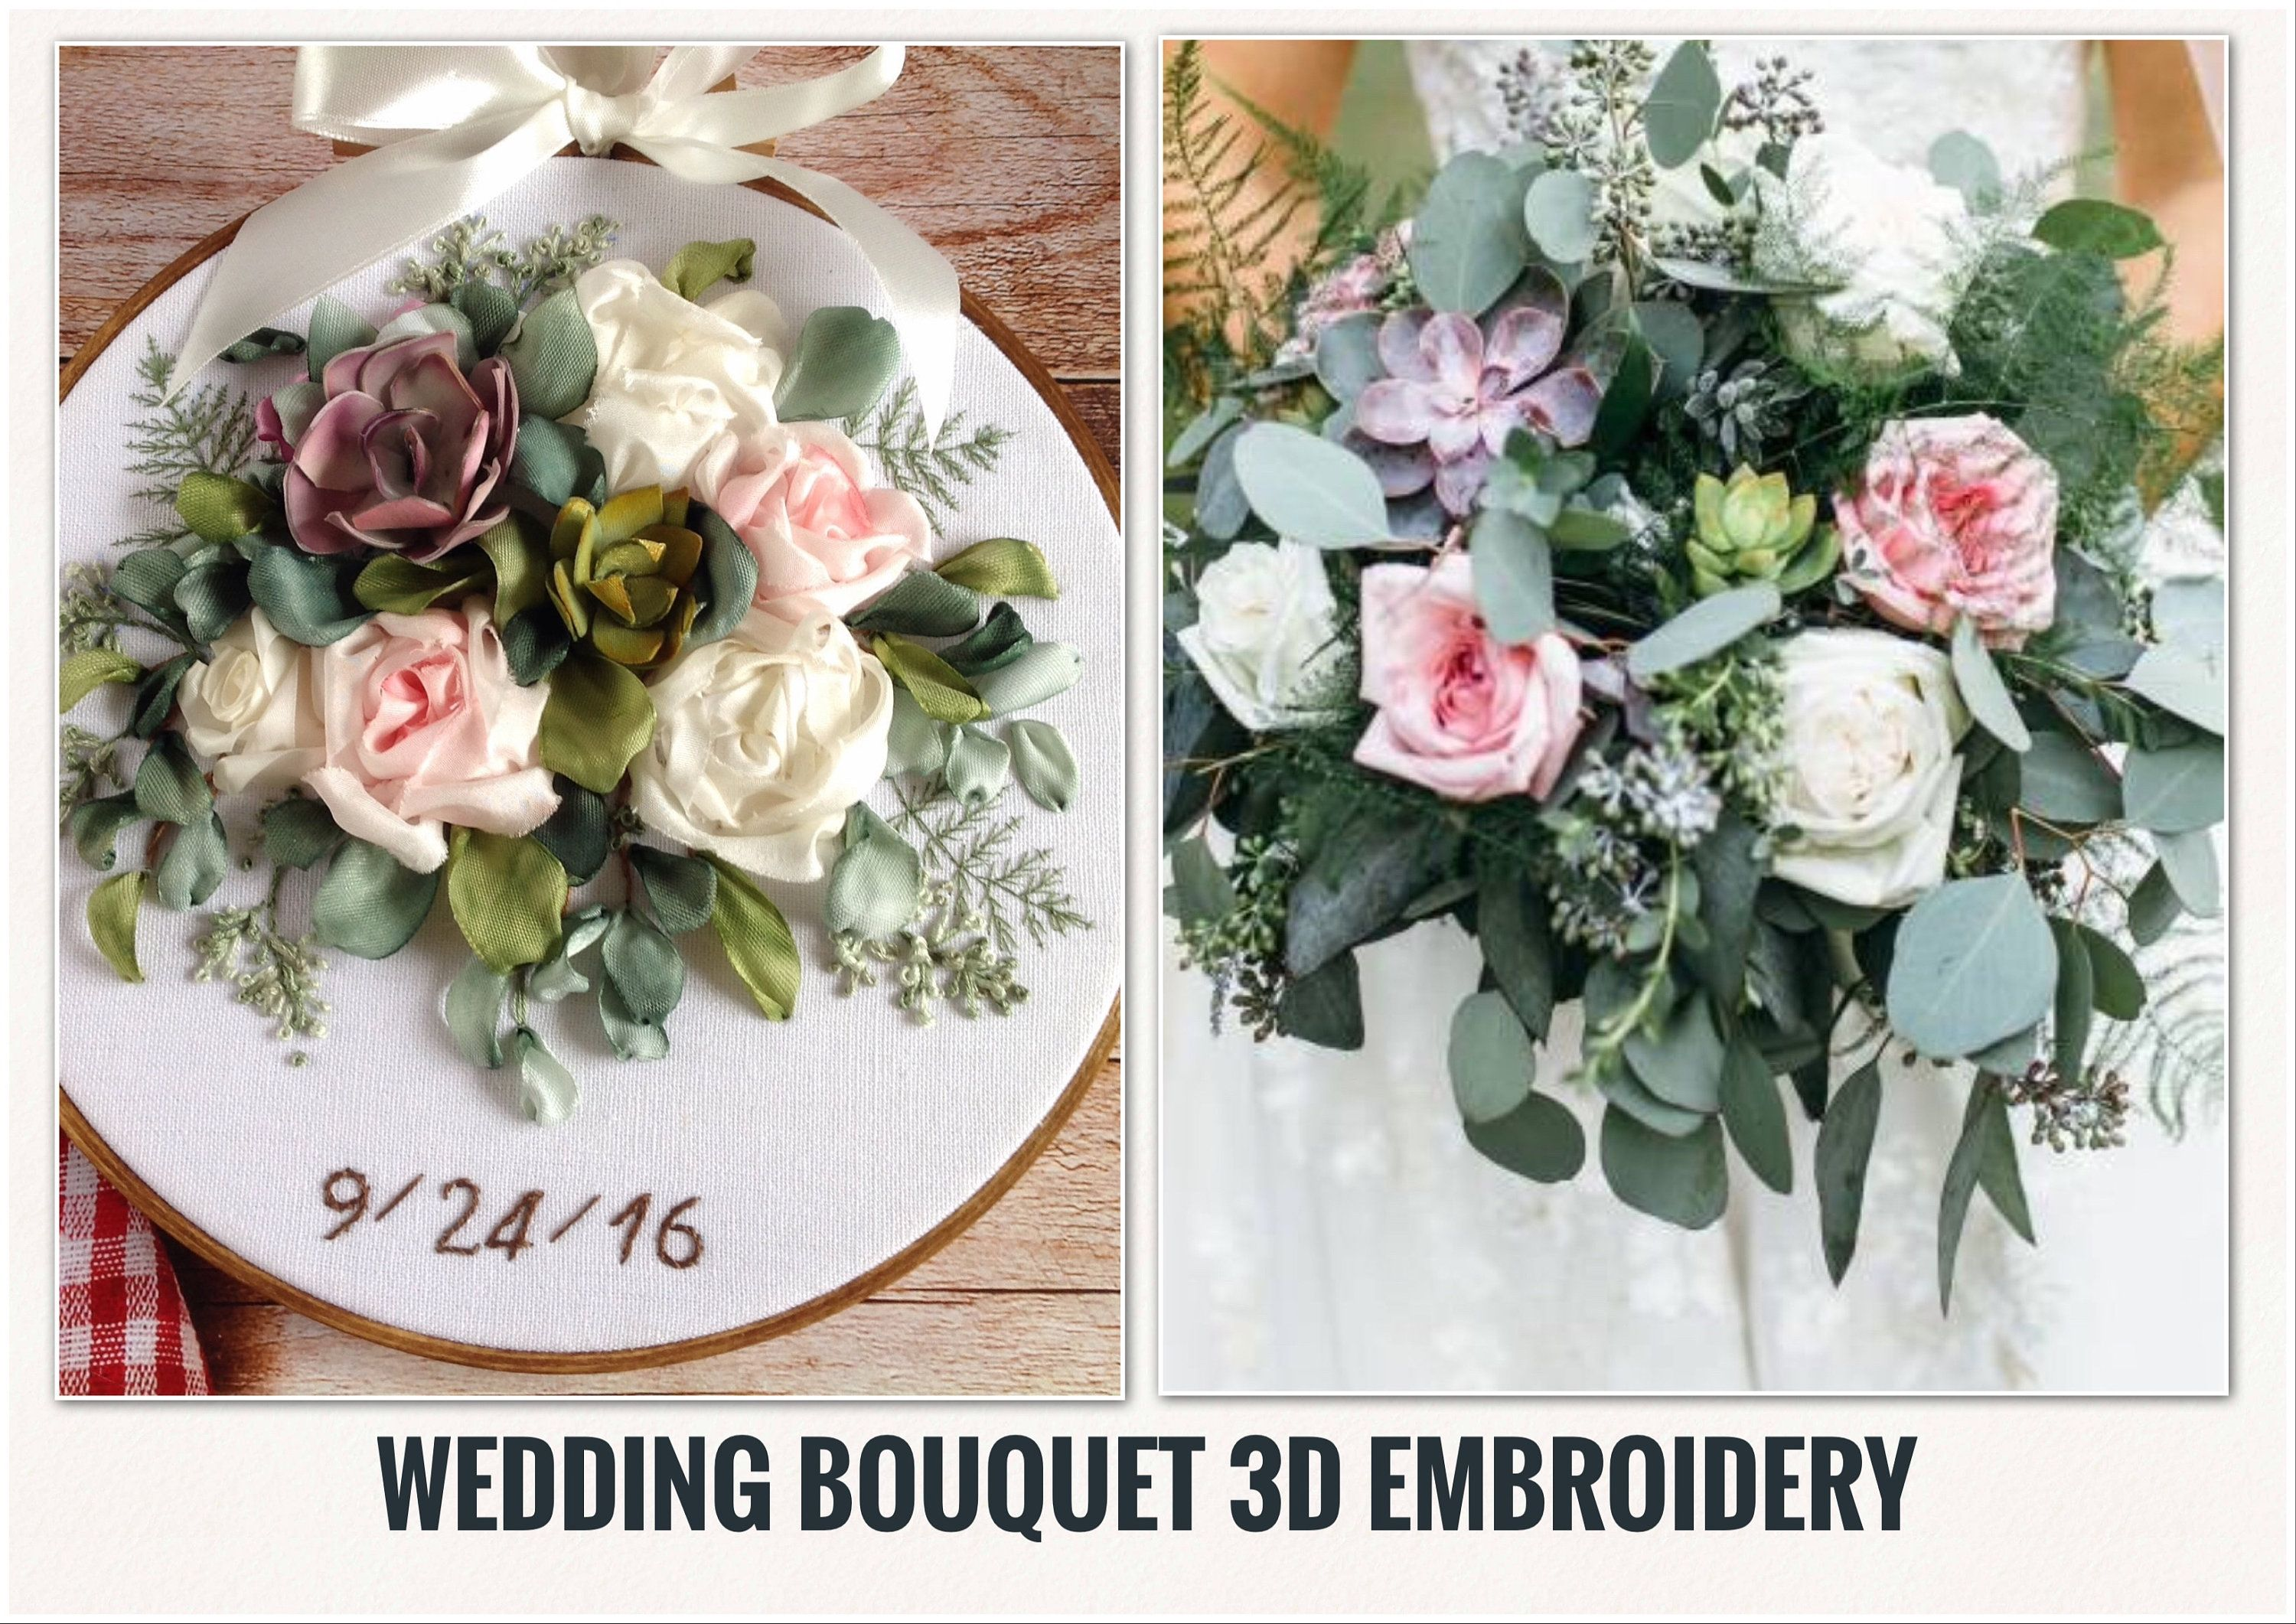 Wedding Bouquet 3d Embroidery2nd 4th Anniversary Giftcustom Etsy In 2020 4th Anniversary Gifts Silk Ribbon Embroidery Wedding Bouquets